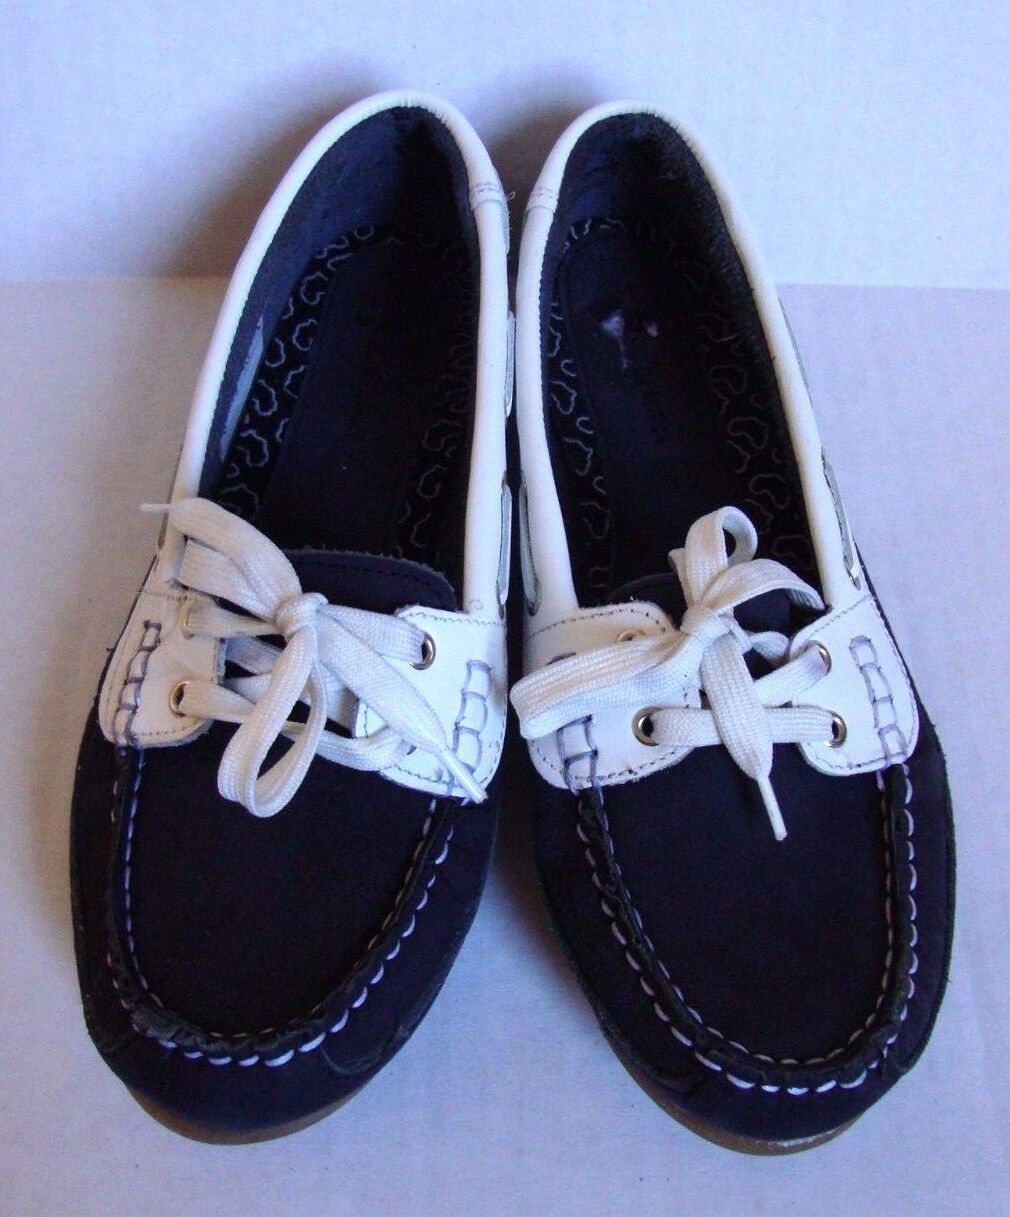 New Clarks Women's Soul Of Of Africa Nerina Juliete Leather Boat Shoes Navy SZ 7 1